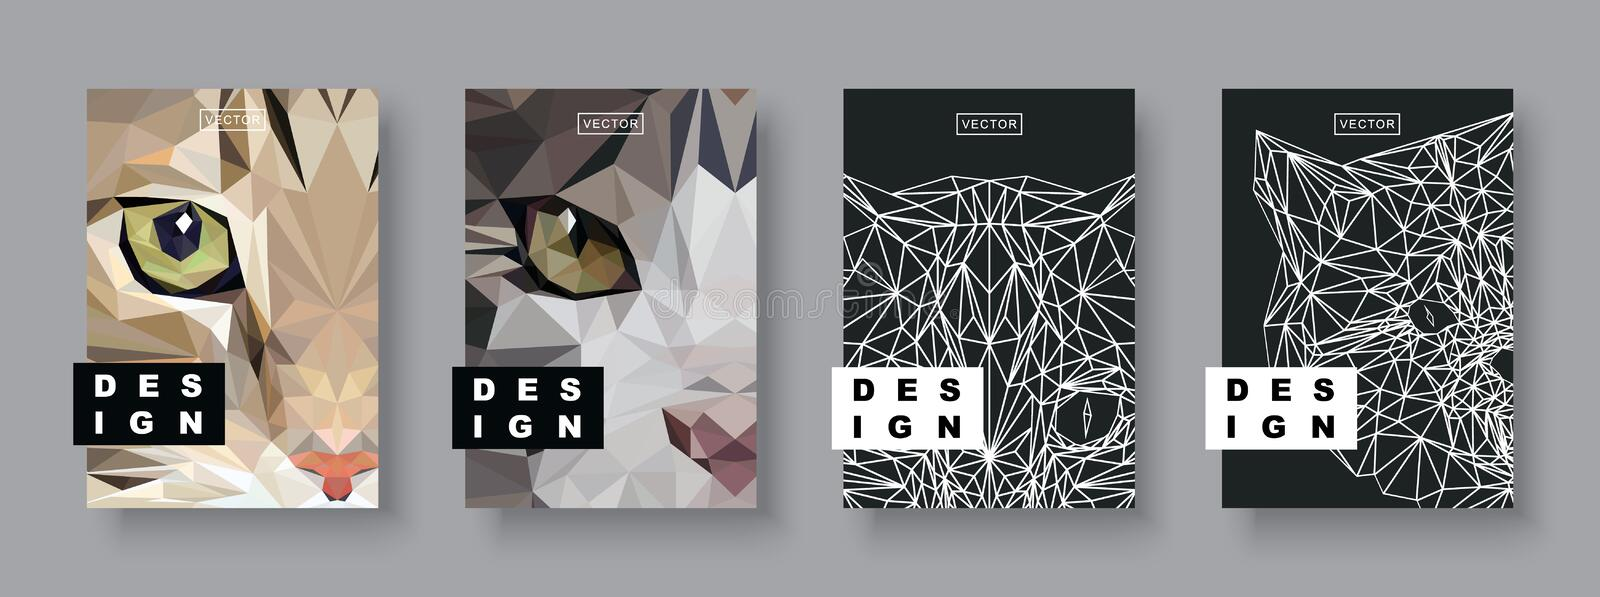 Cats abstract covers set. Future Poster template. Concept geometric pet animal. Polygonal halftone. Cat face silhouette. Cats abstract covers set. Futuristic royalty free illustration